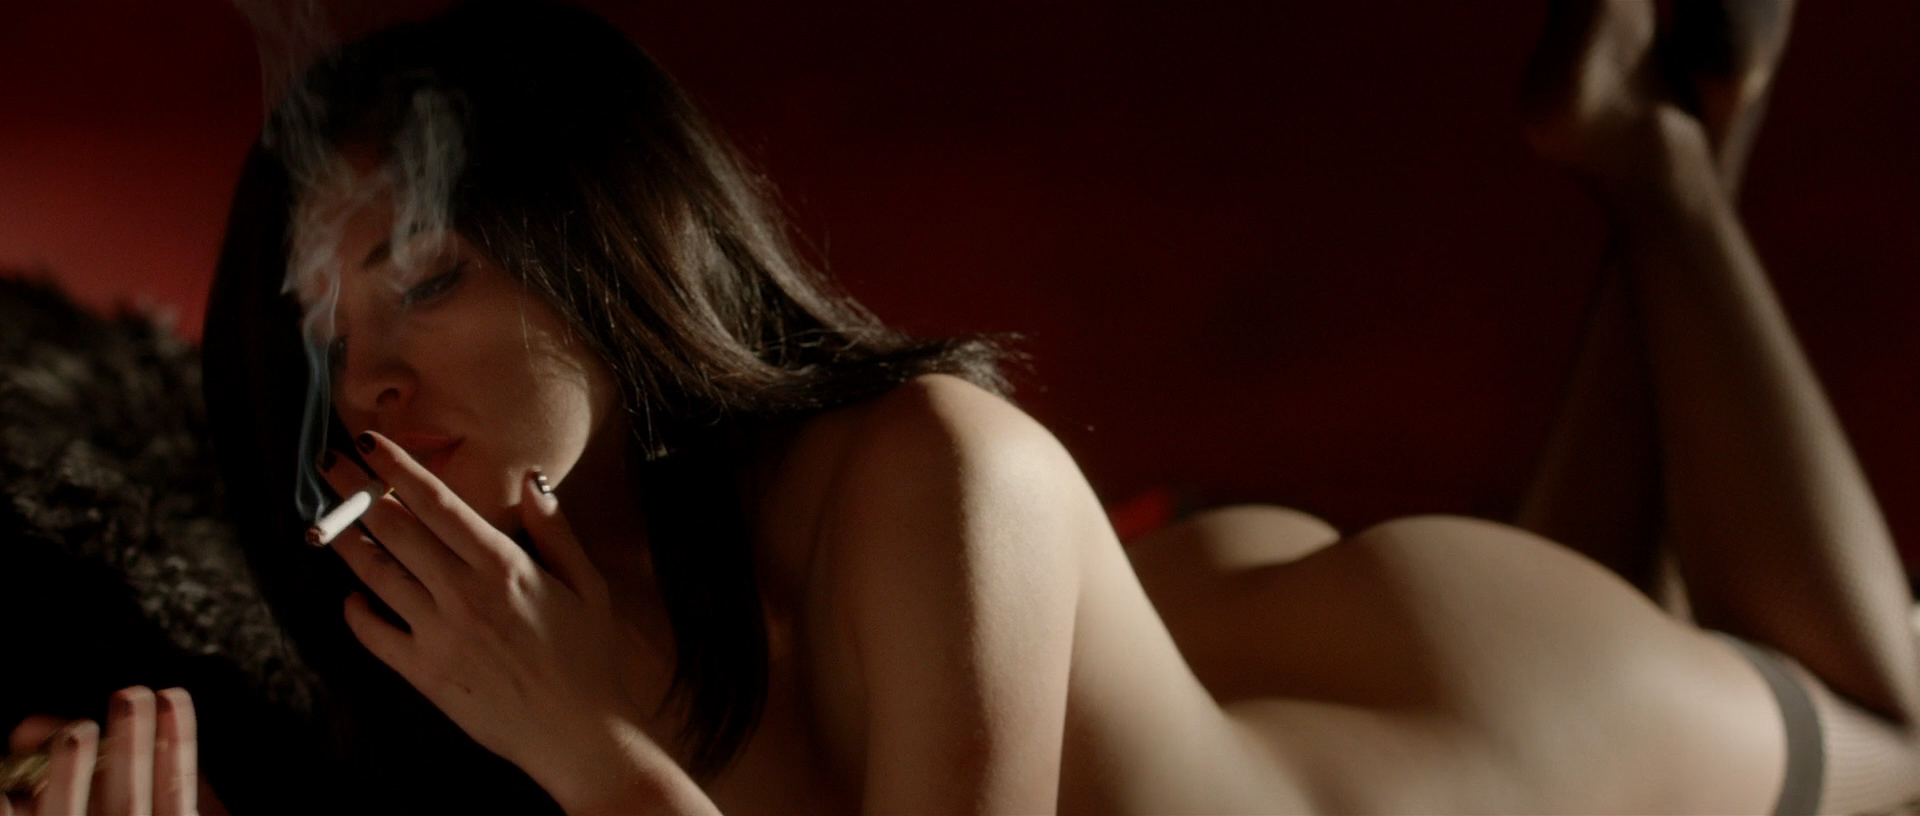 Alexis Knapp nude butt naked and very hot and few others full nude - The Anomaly (2014) hd1080p (6)